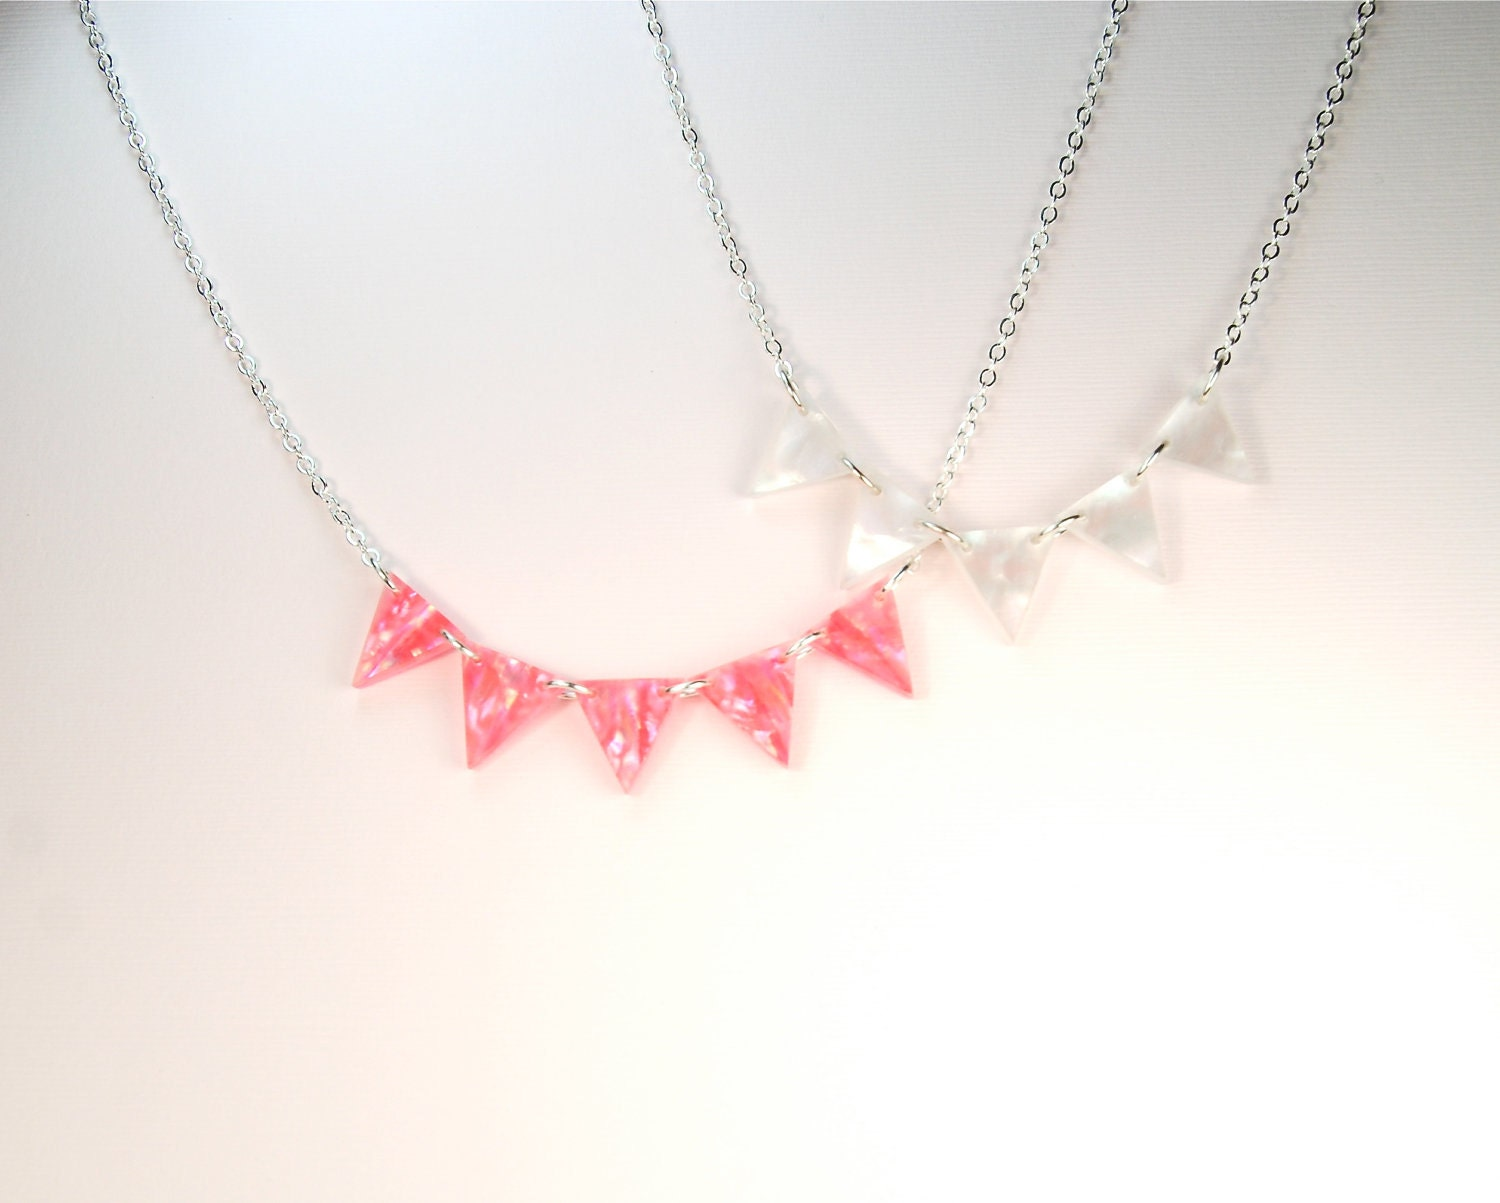 Pink Modern Geometric Triangle Pennant Necklace